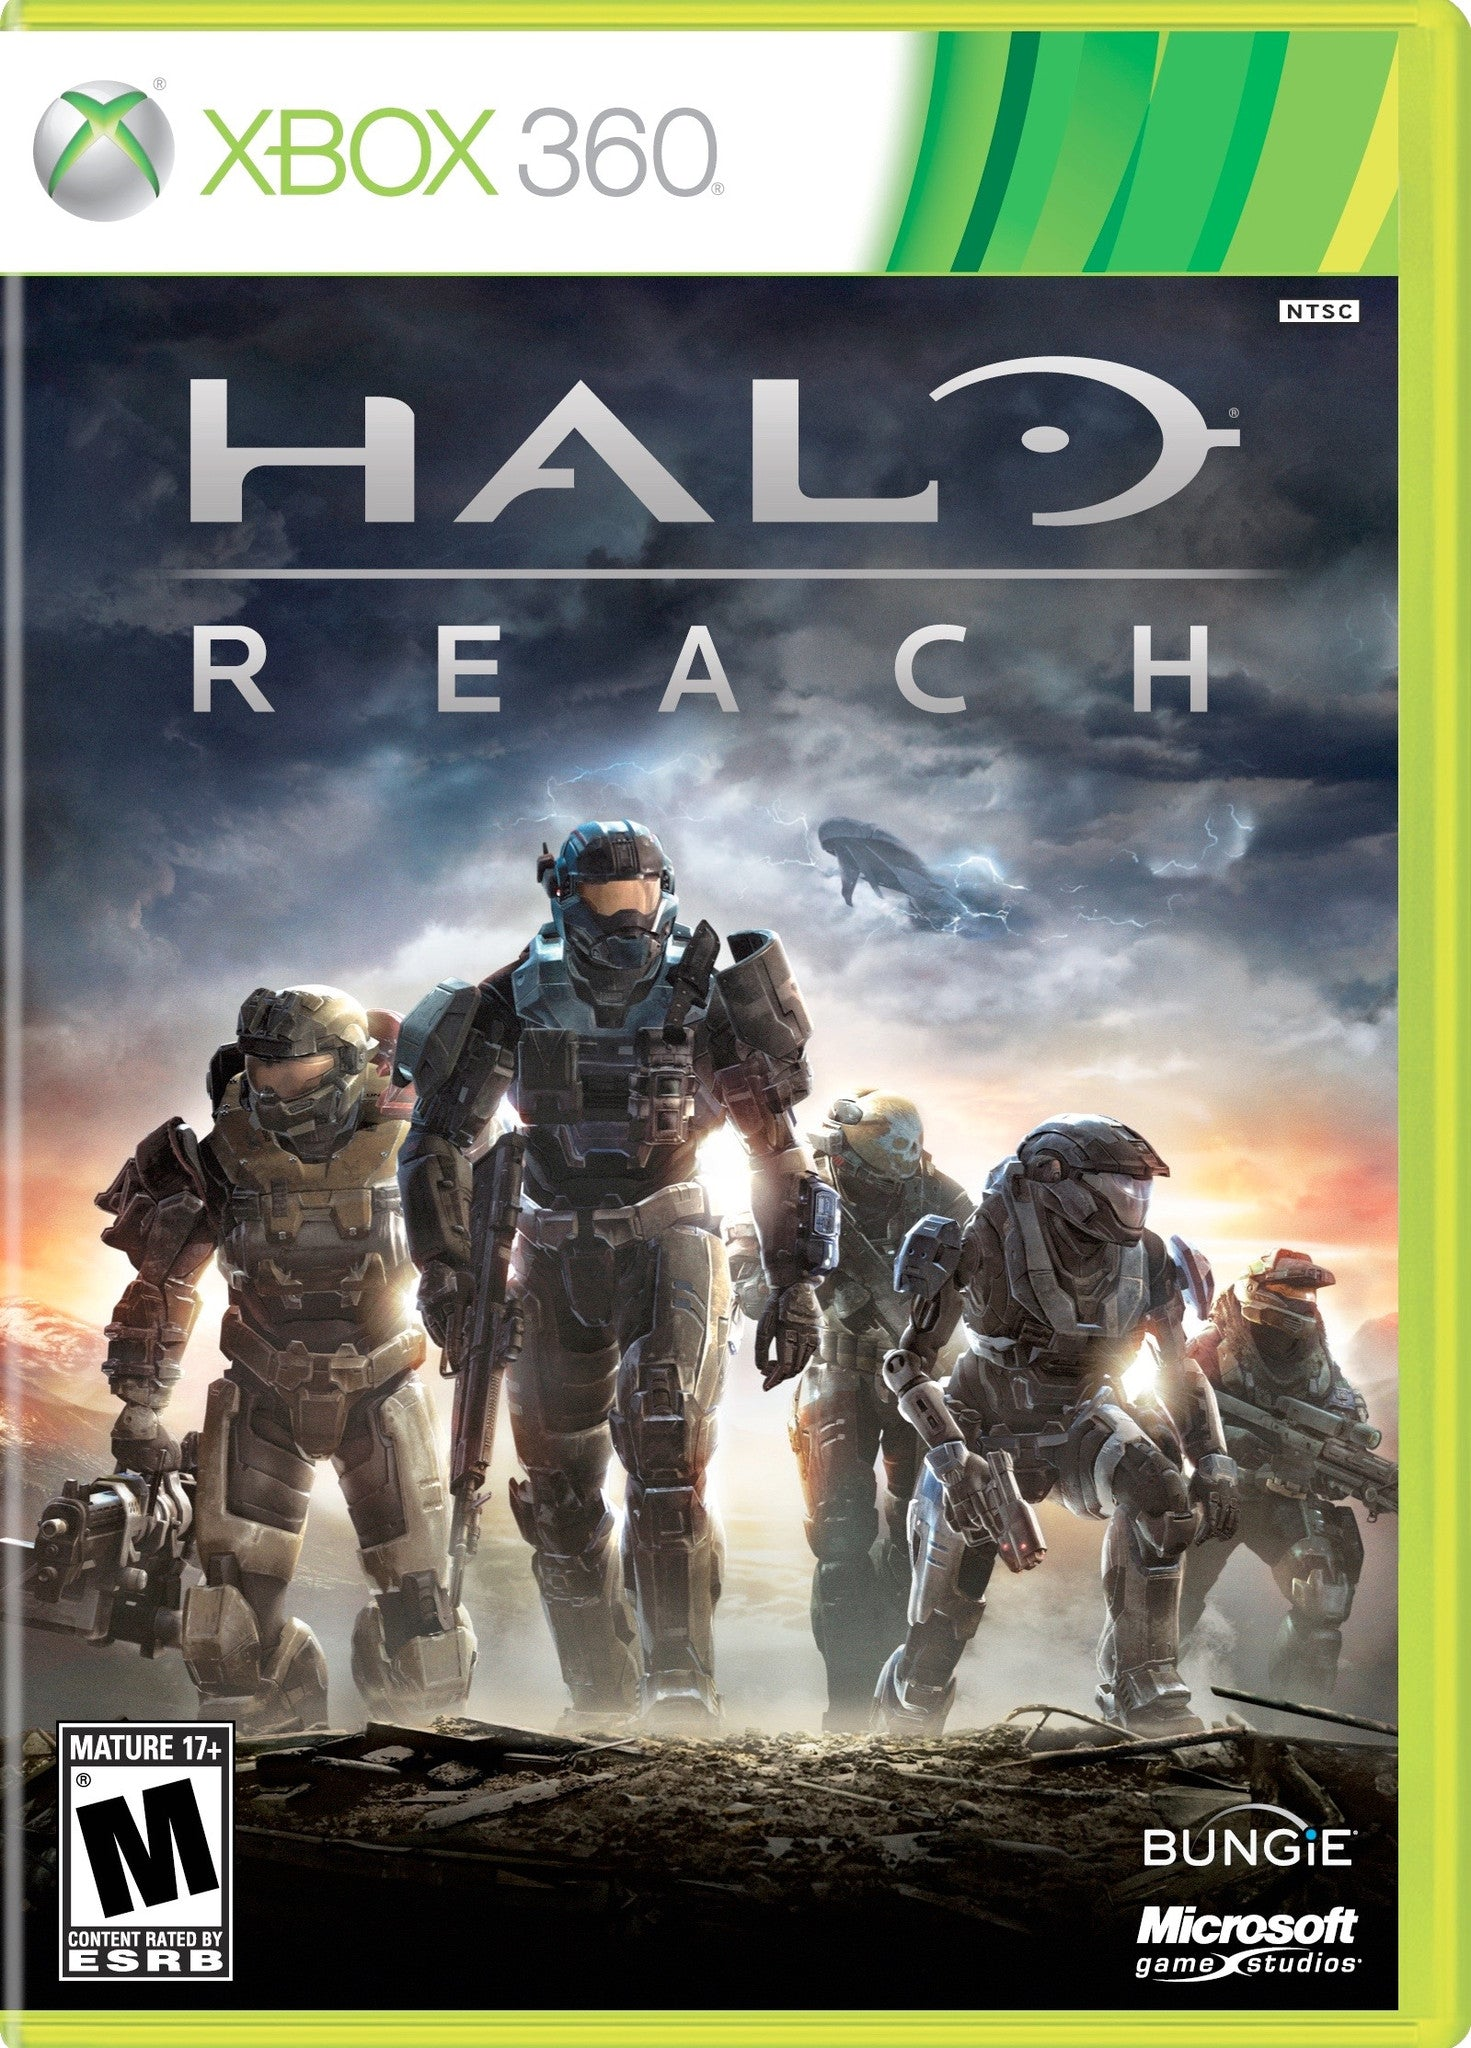 Halo REACH Forge kaarten in Matchmaking